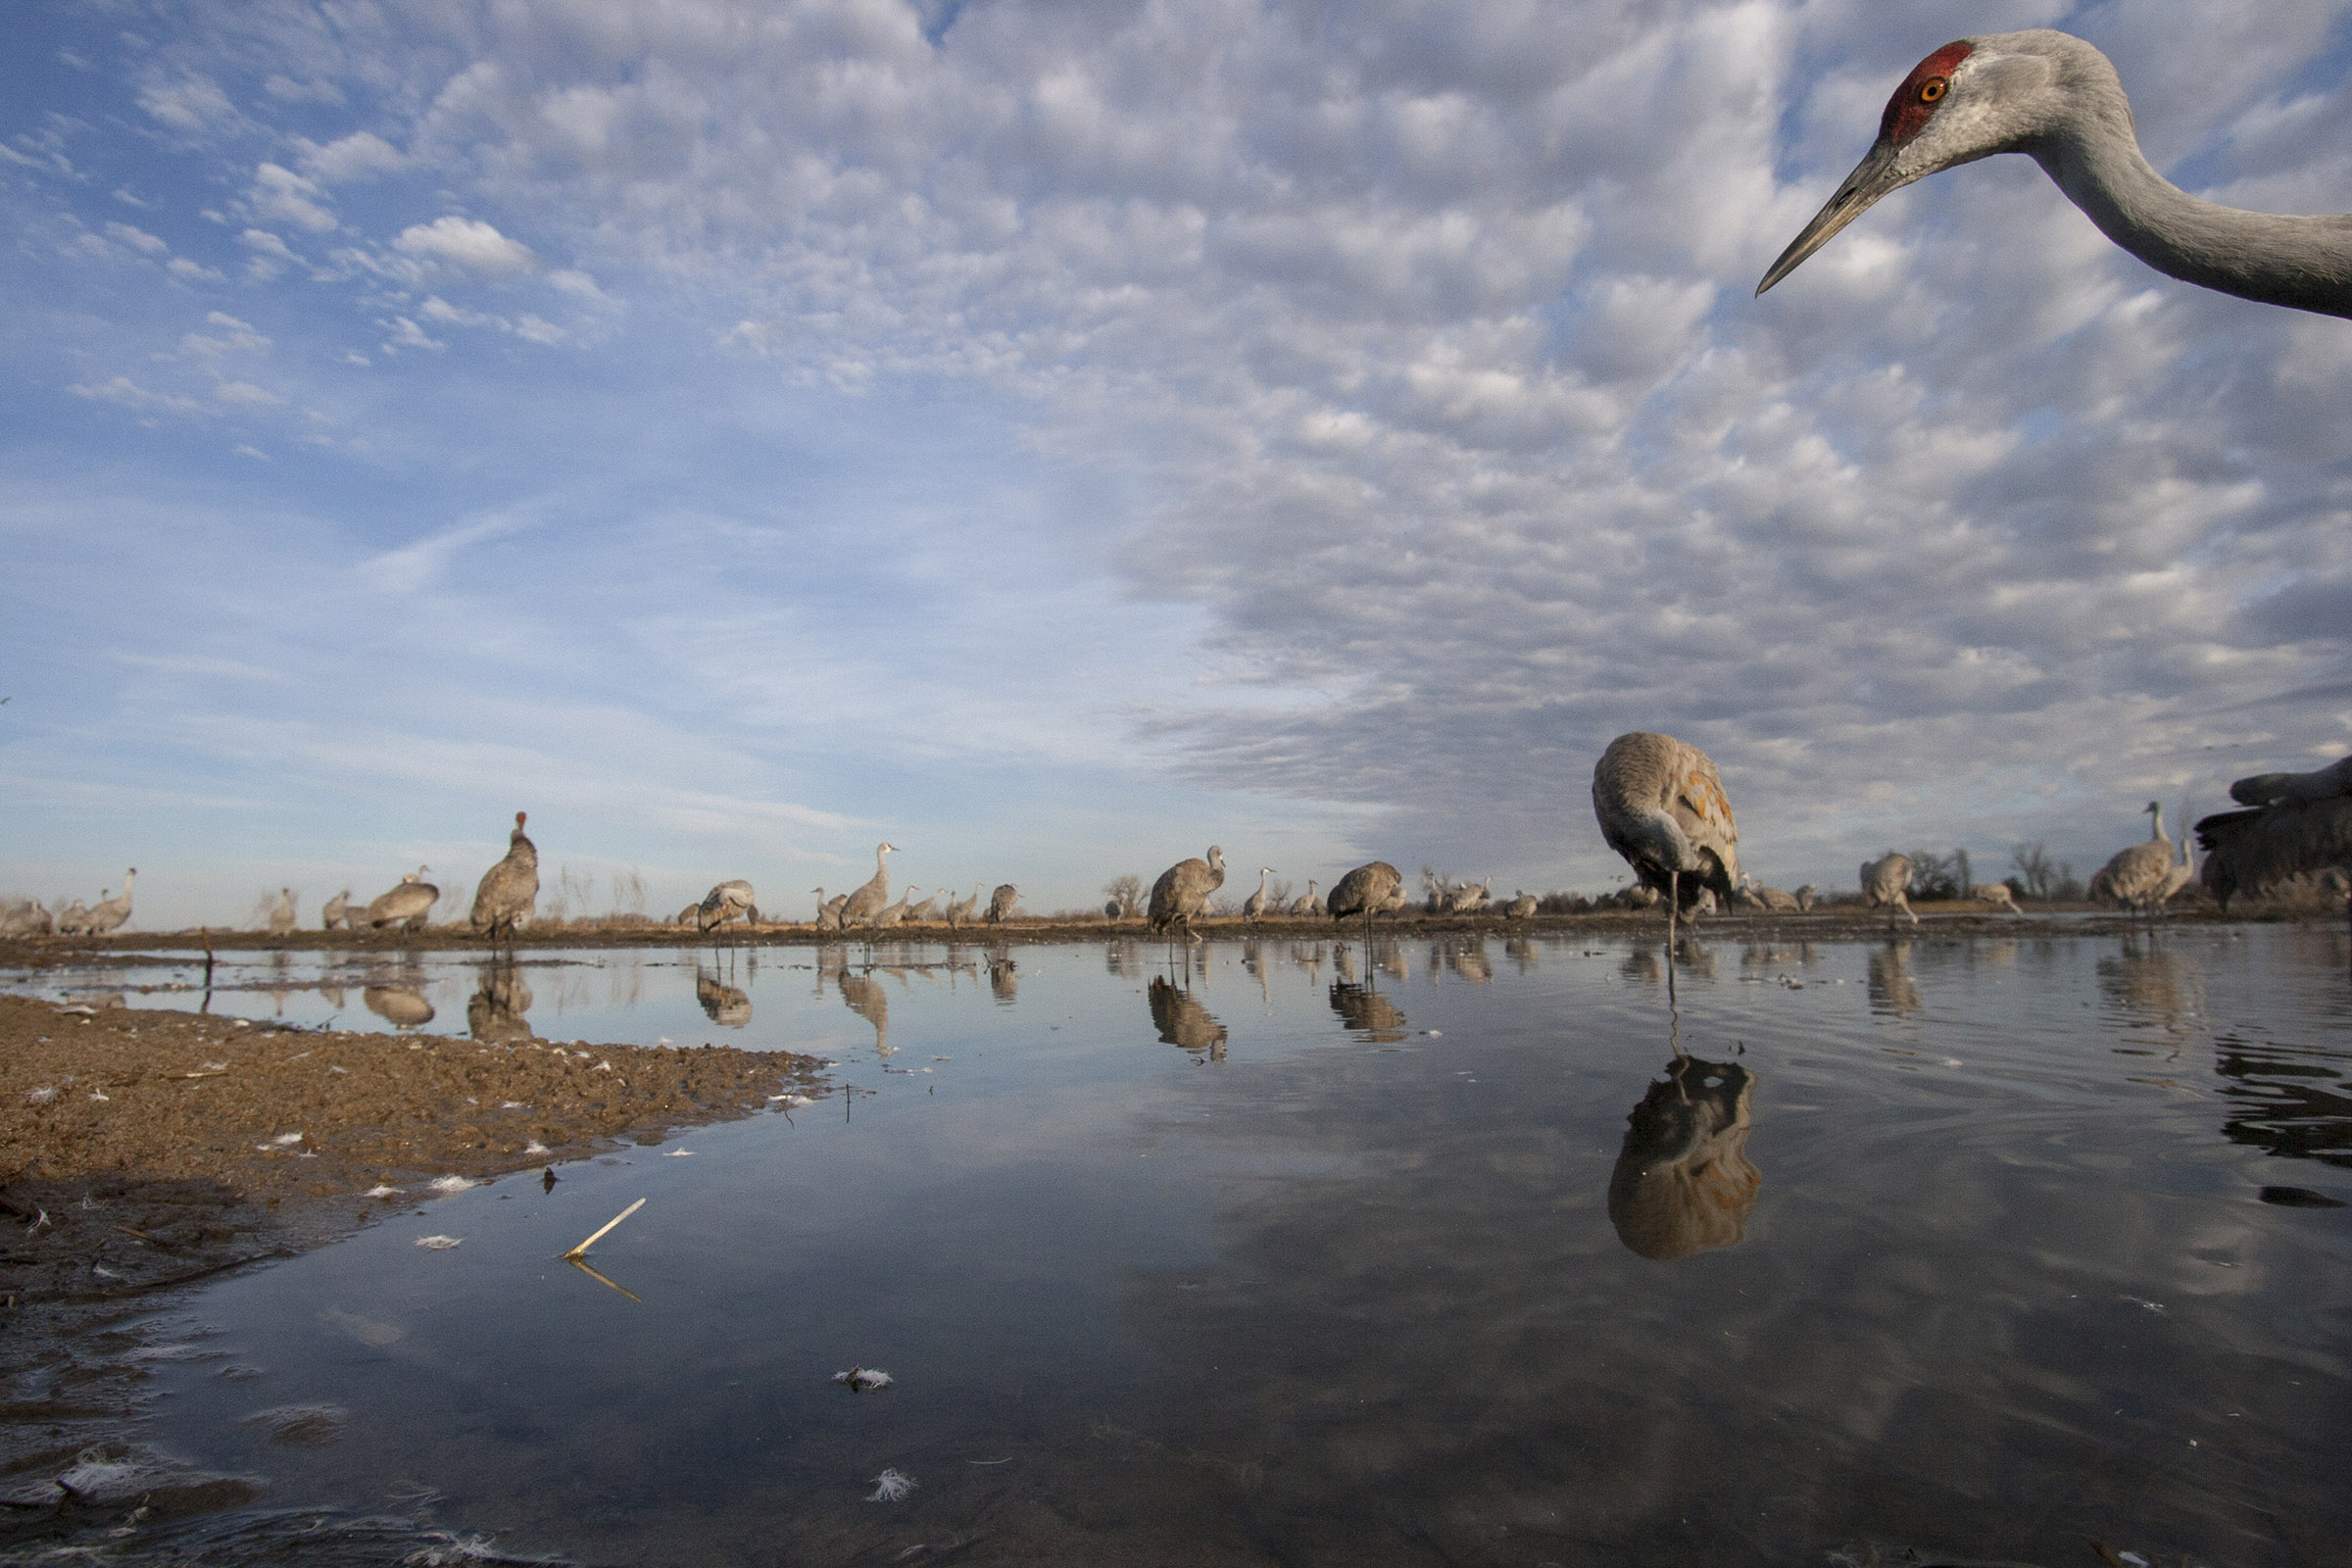 Sandhill cranes mingle on a mid-river sandbar just after sunrise before leaving the roost. (Michael Forsberg)